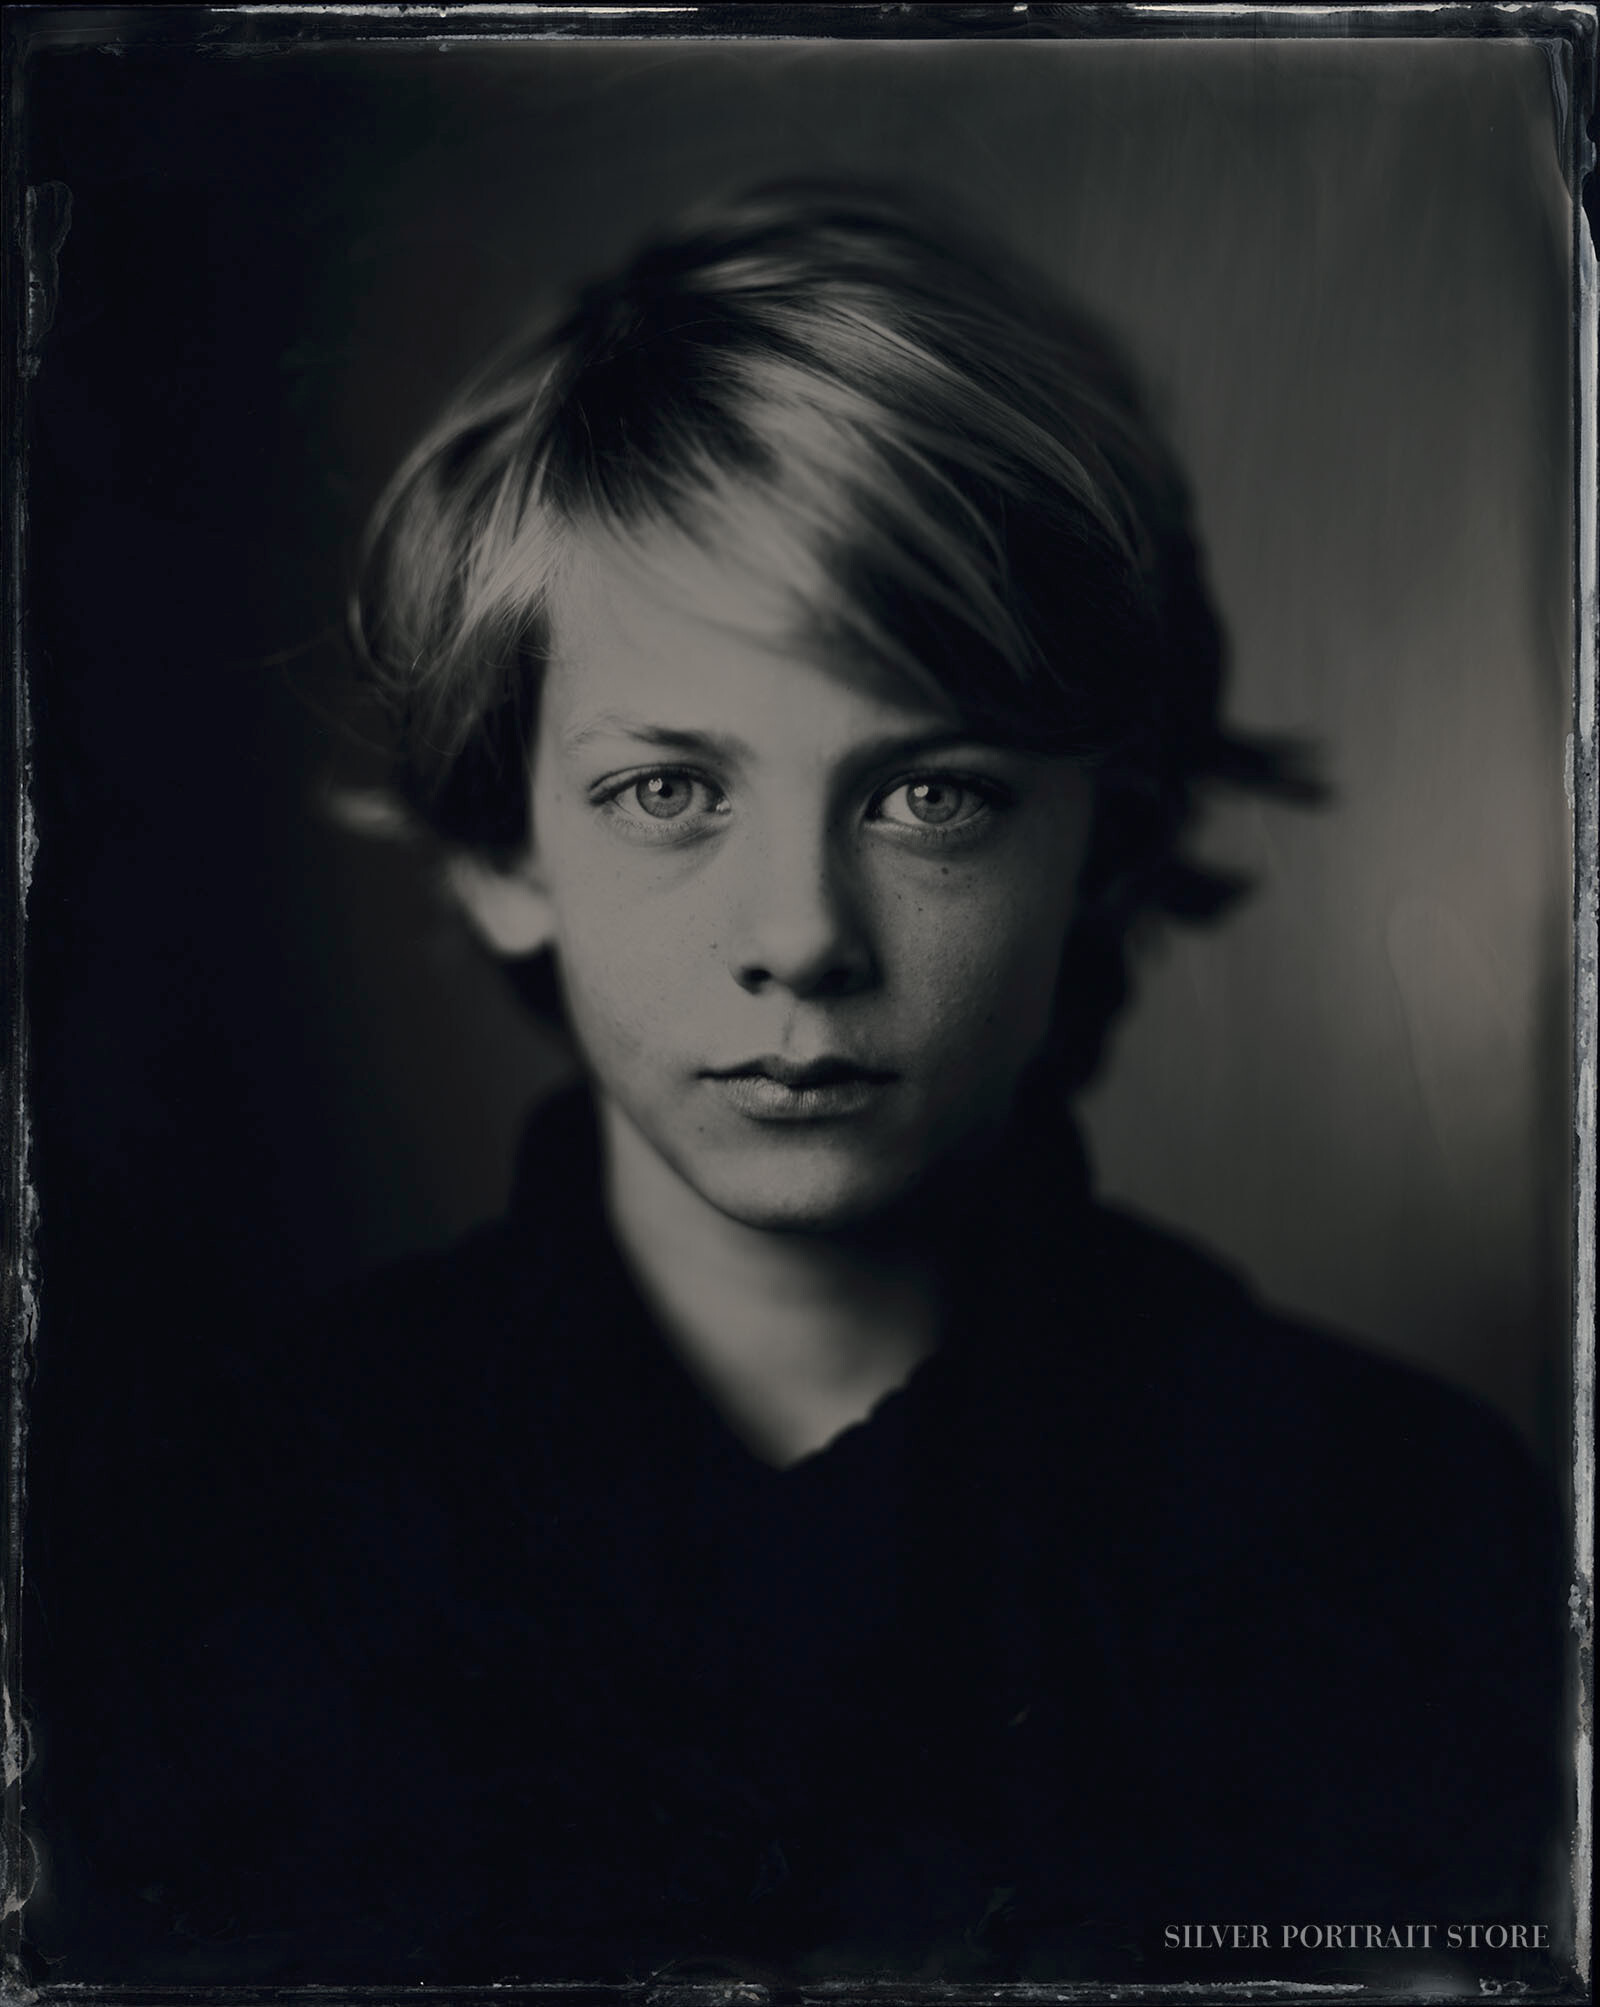 Pepijn-Silver Portrait Store-Scan from Wet plate collodion-Tintype 20 x 25 cm.